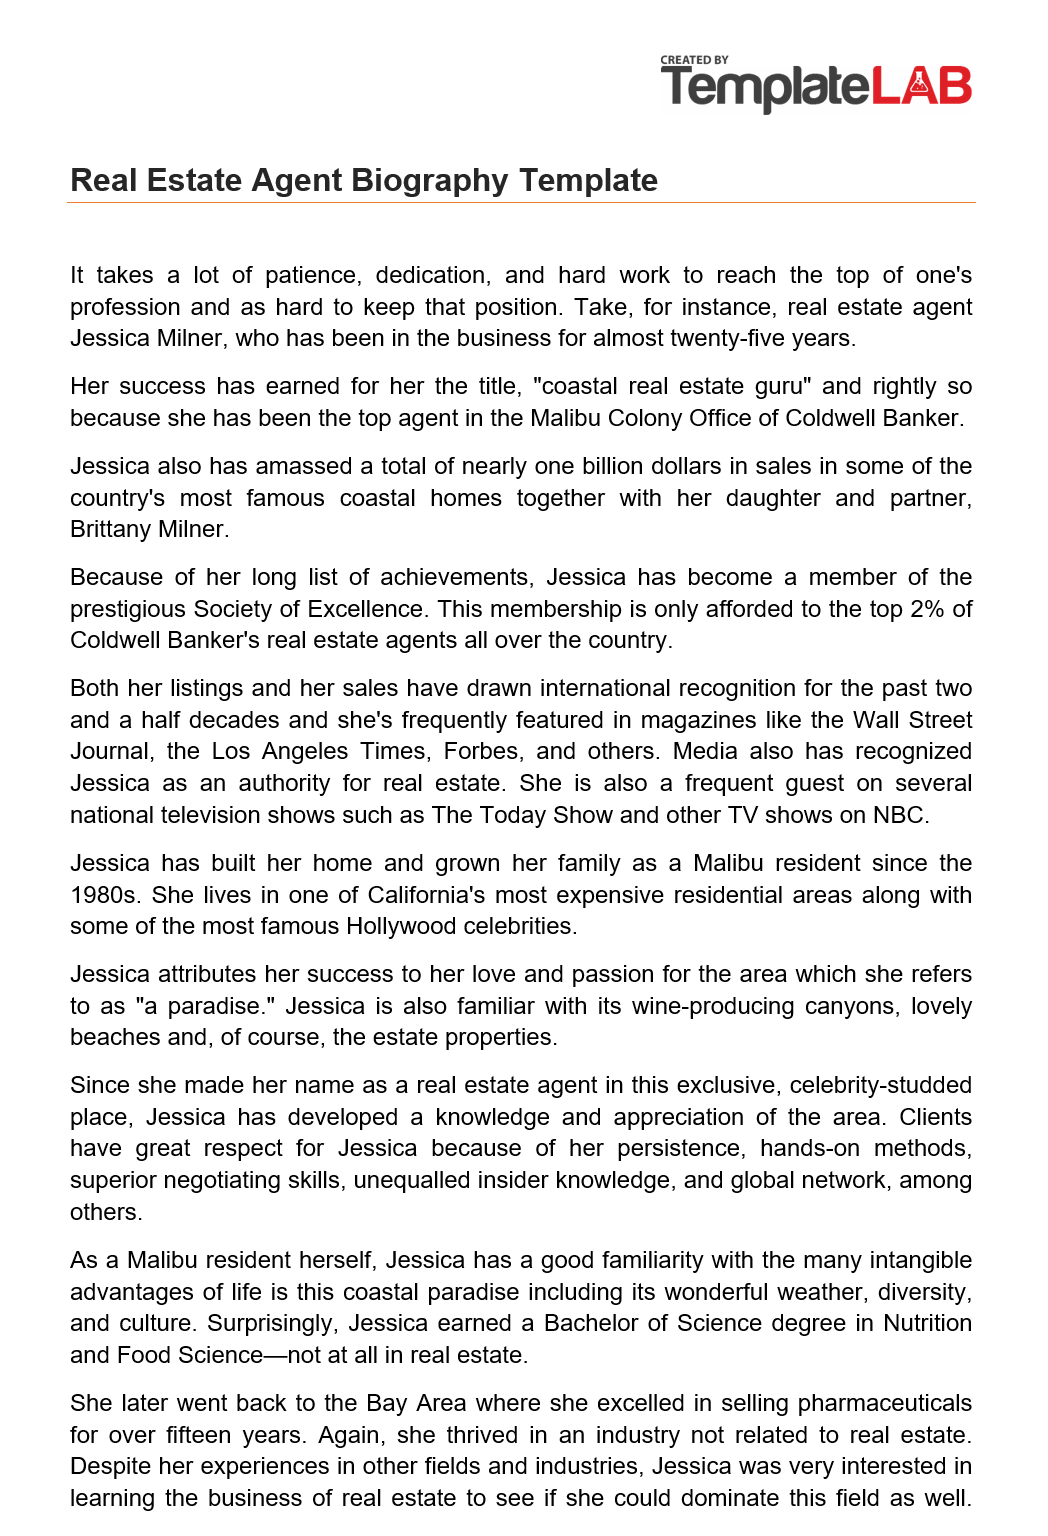 Free Real Estate Agent Biography Template